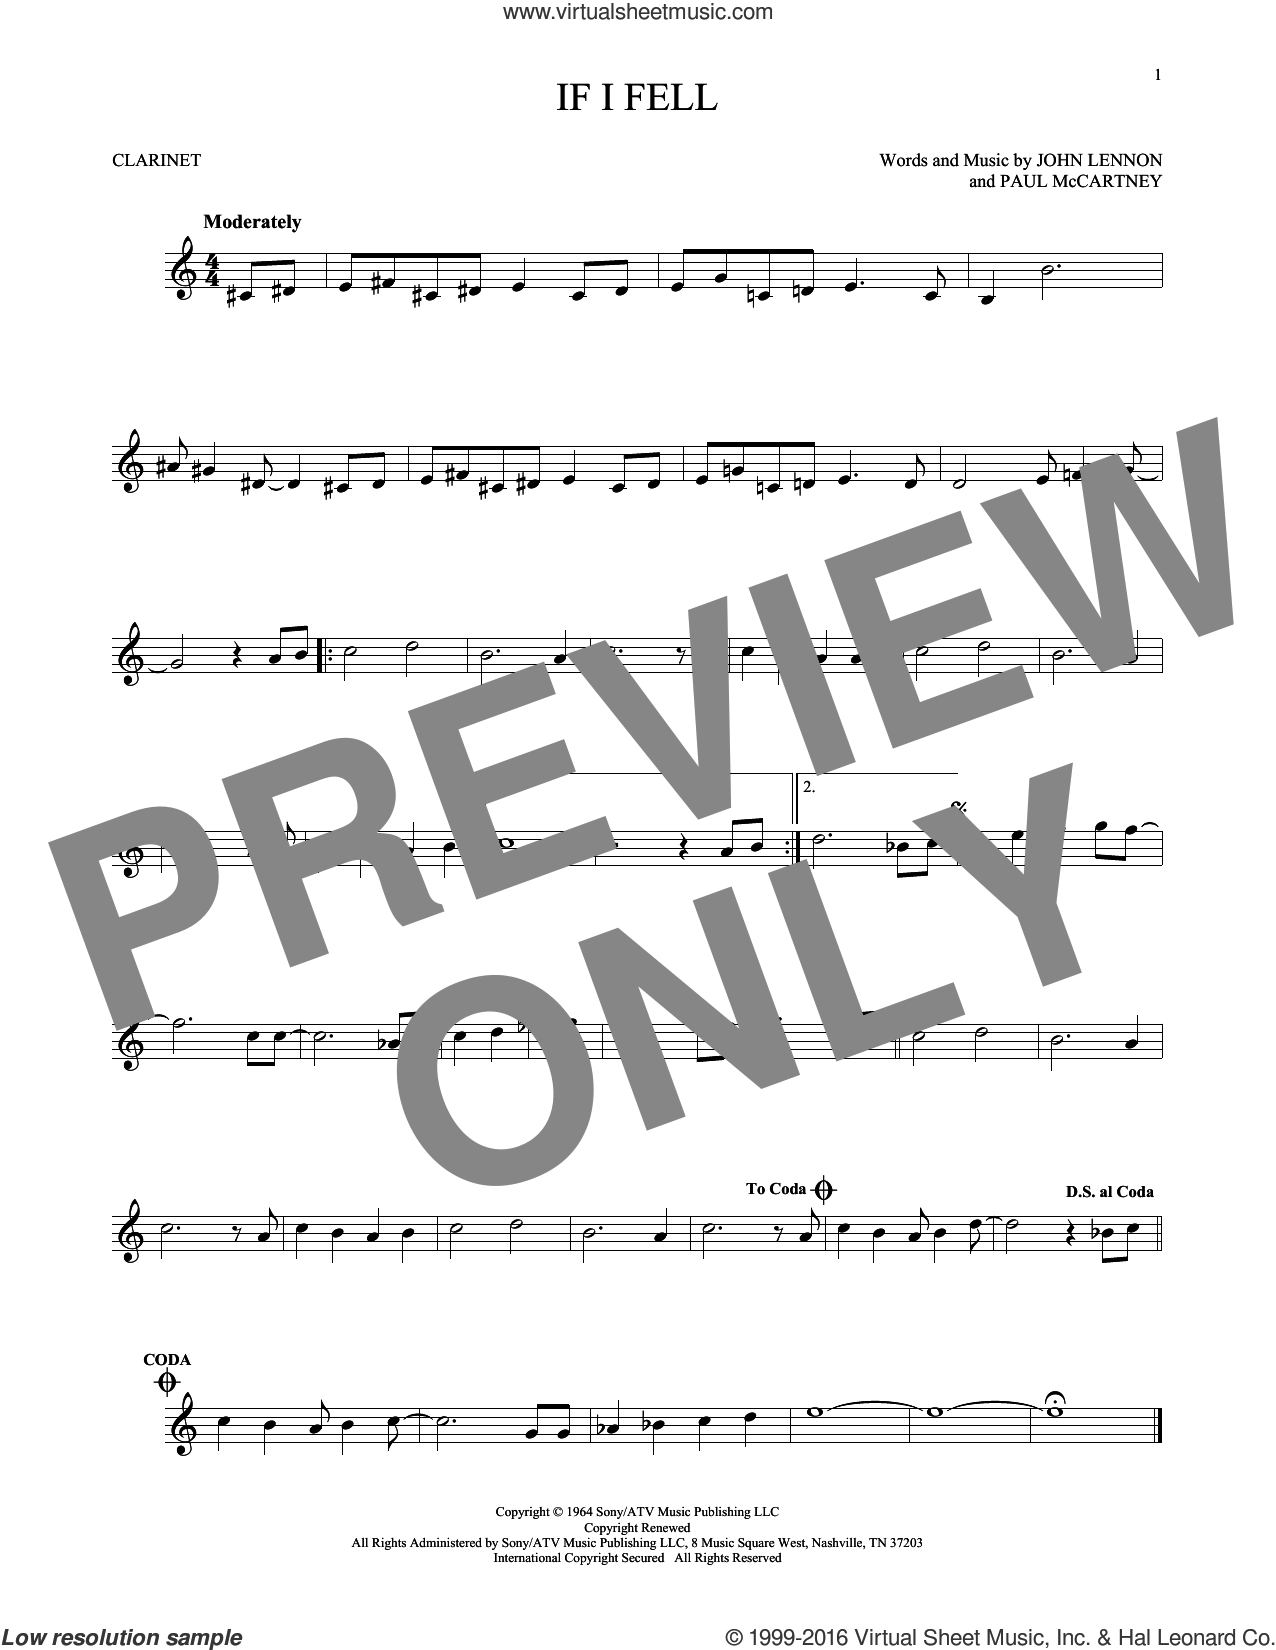 If I Fell sheet music for clarinet solo by The Beatles, John Lennon and Paul McCartney. Score Image Preview.